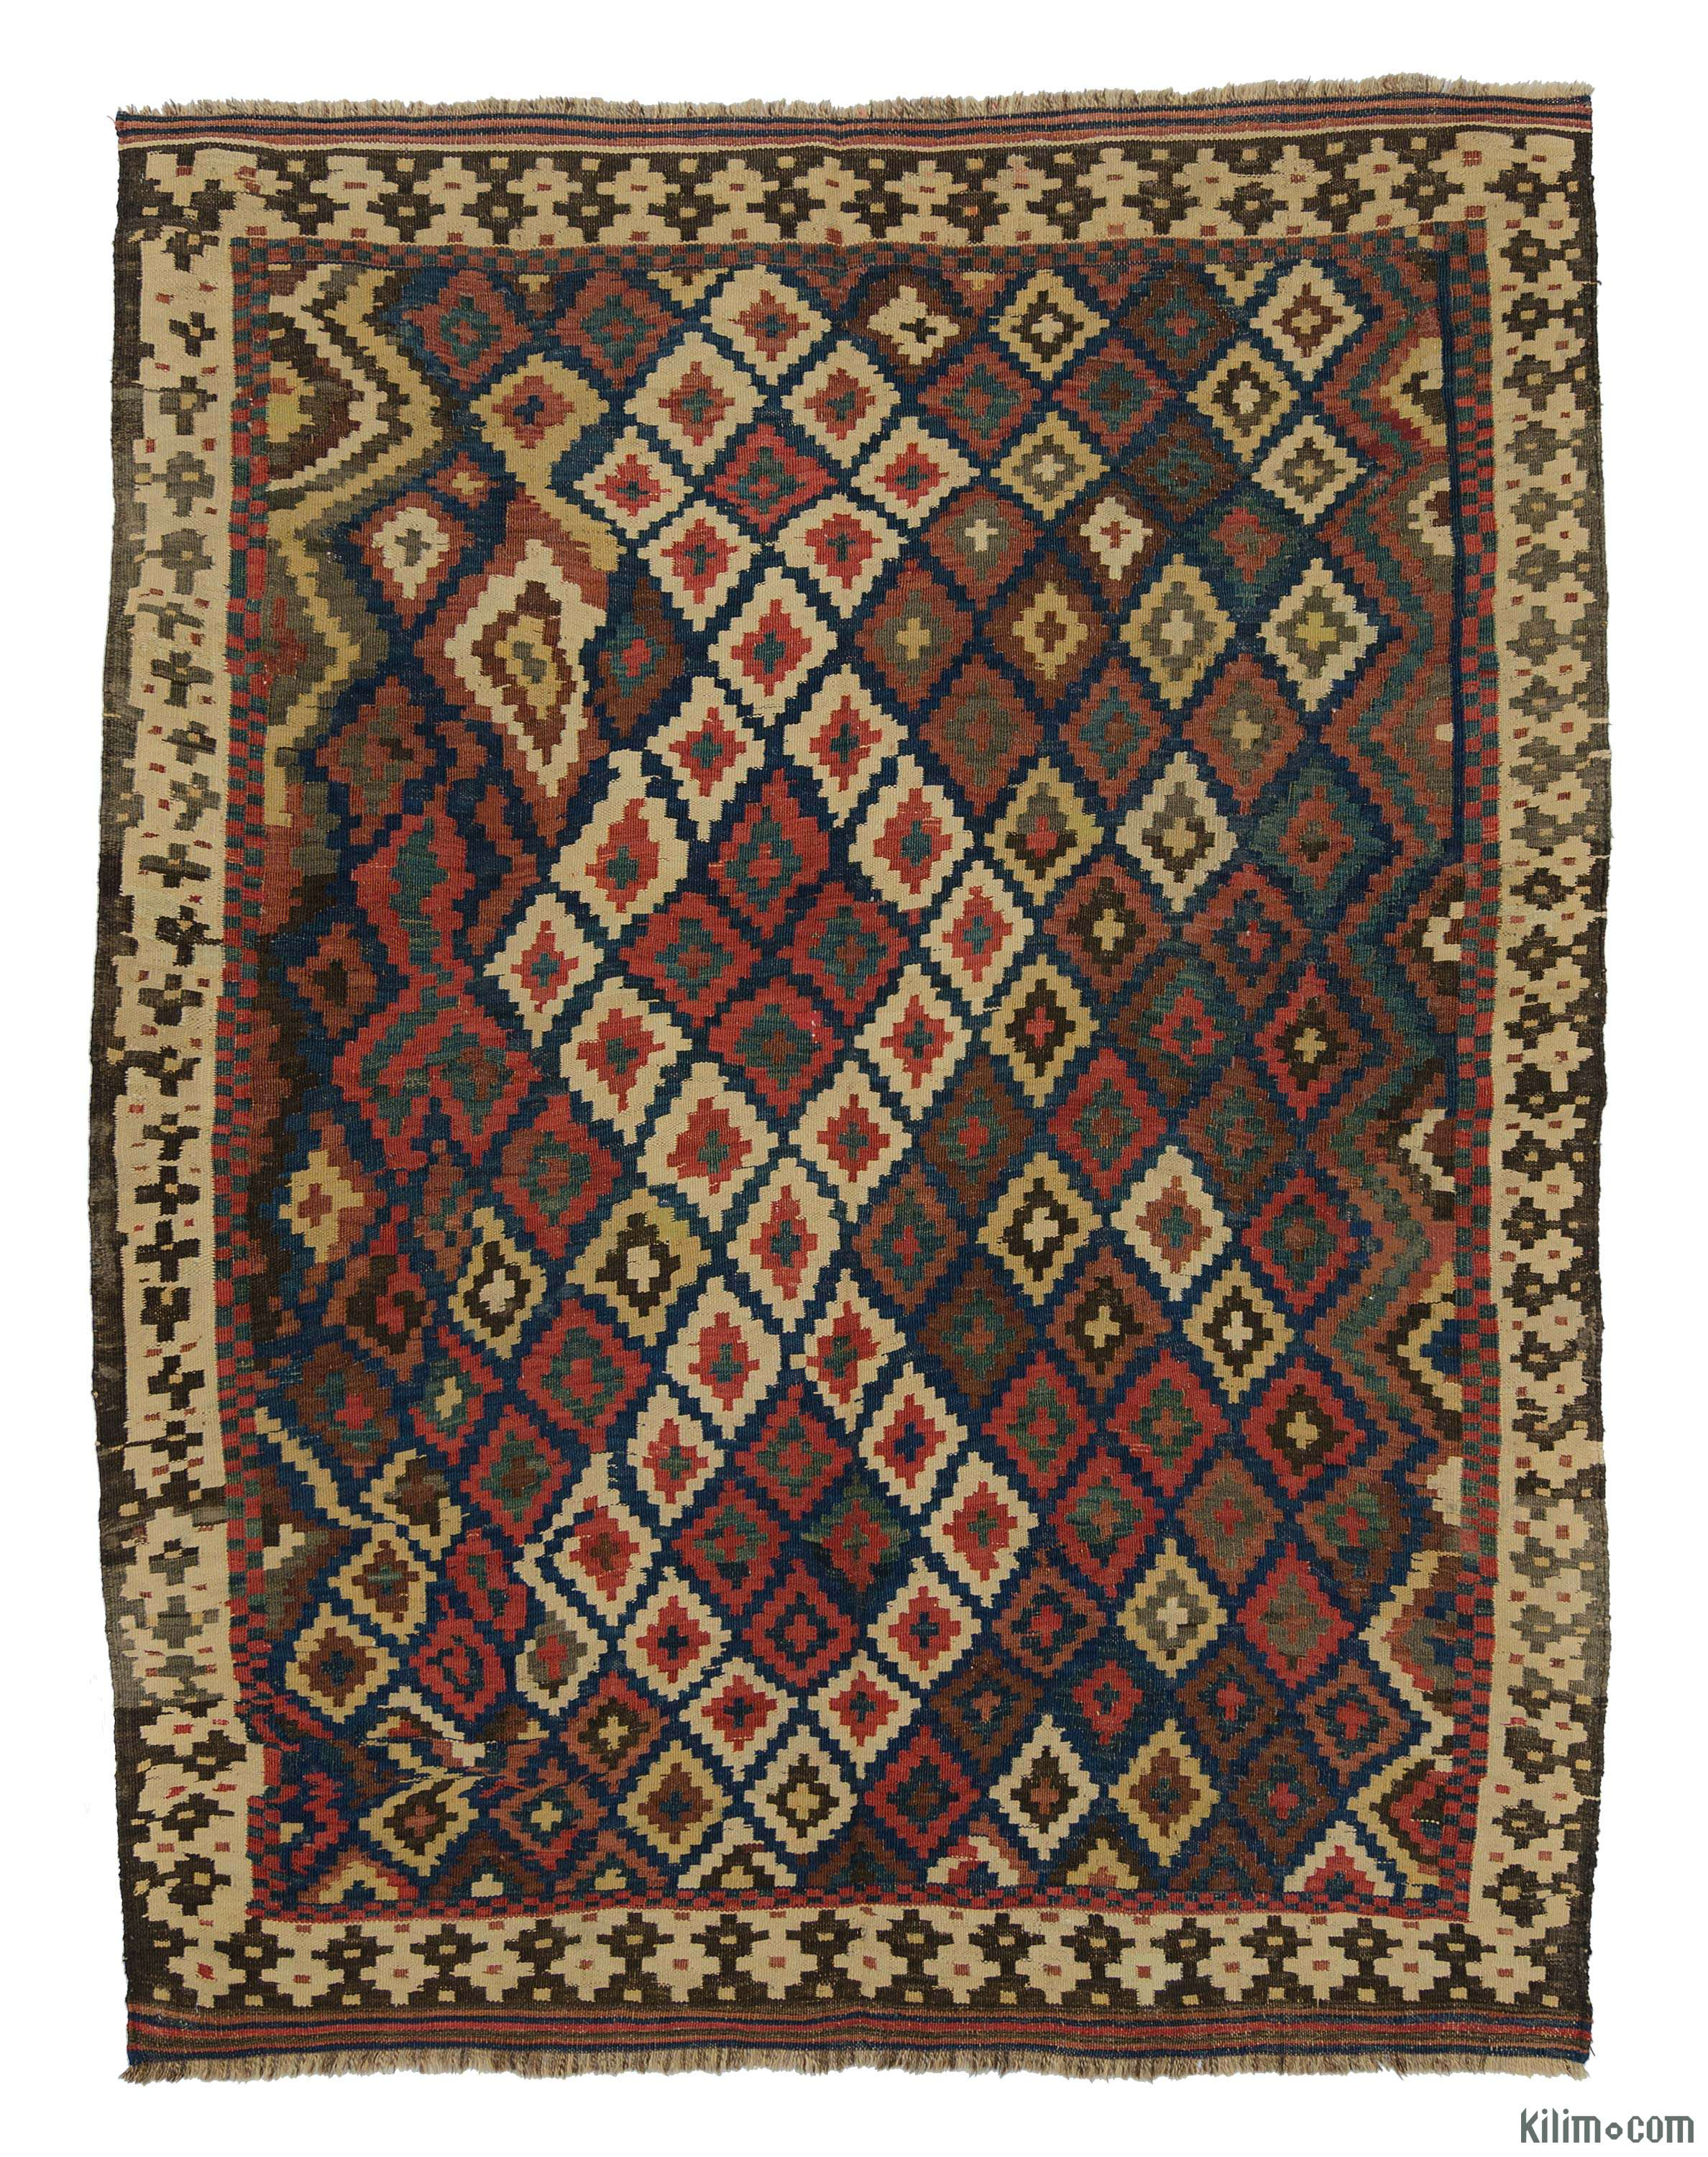 Rugs And Kilims Are The Master Elements Of Bohemian Style: Antique Kilim Rugs